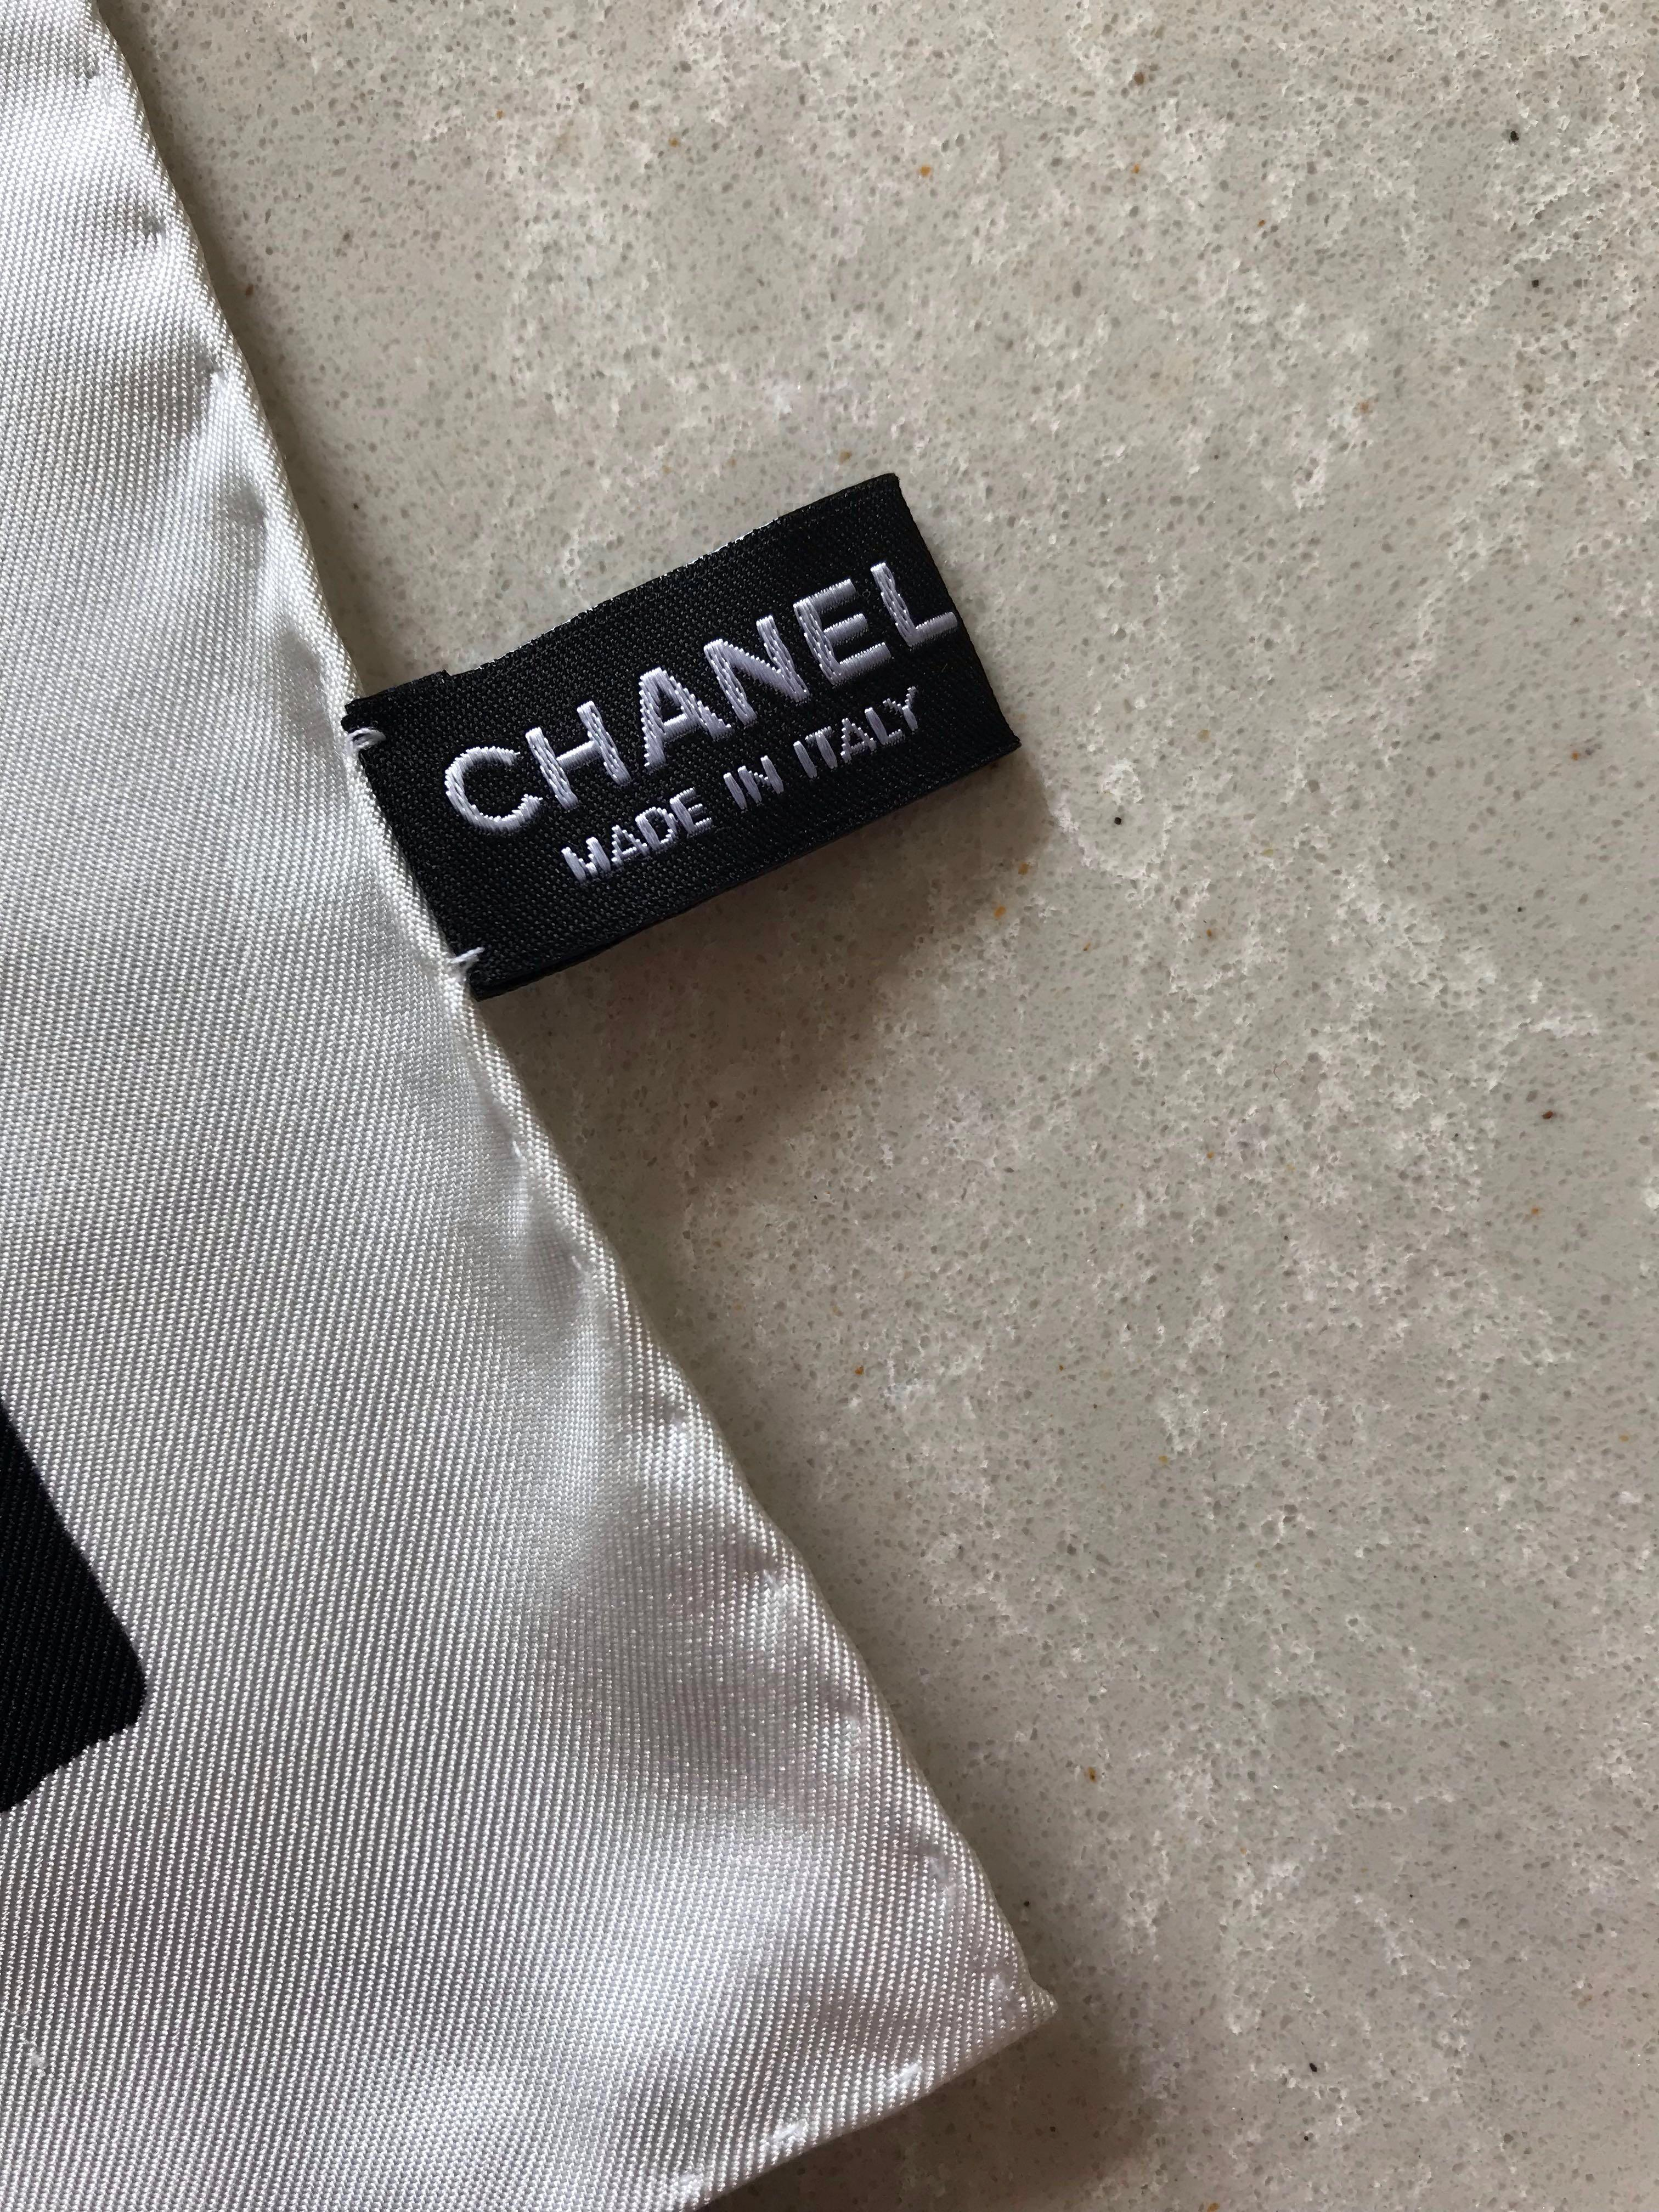 Authentic Chanel Square Silk Scarf - Black & White with signature logo (Complimentary registered mail!)